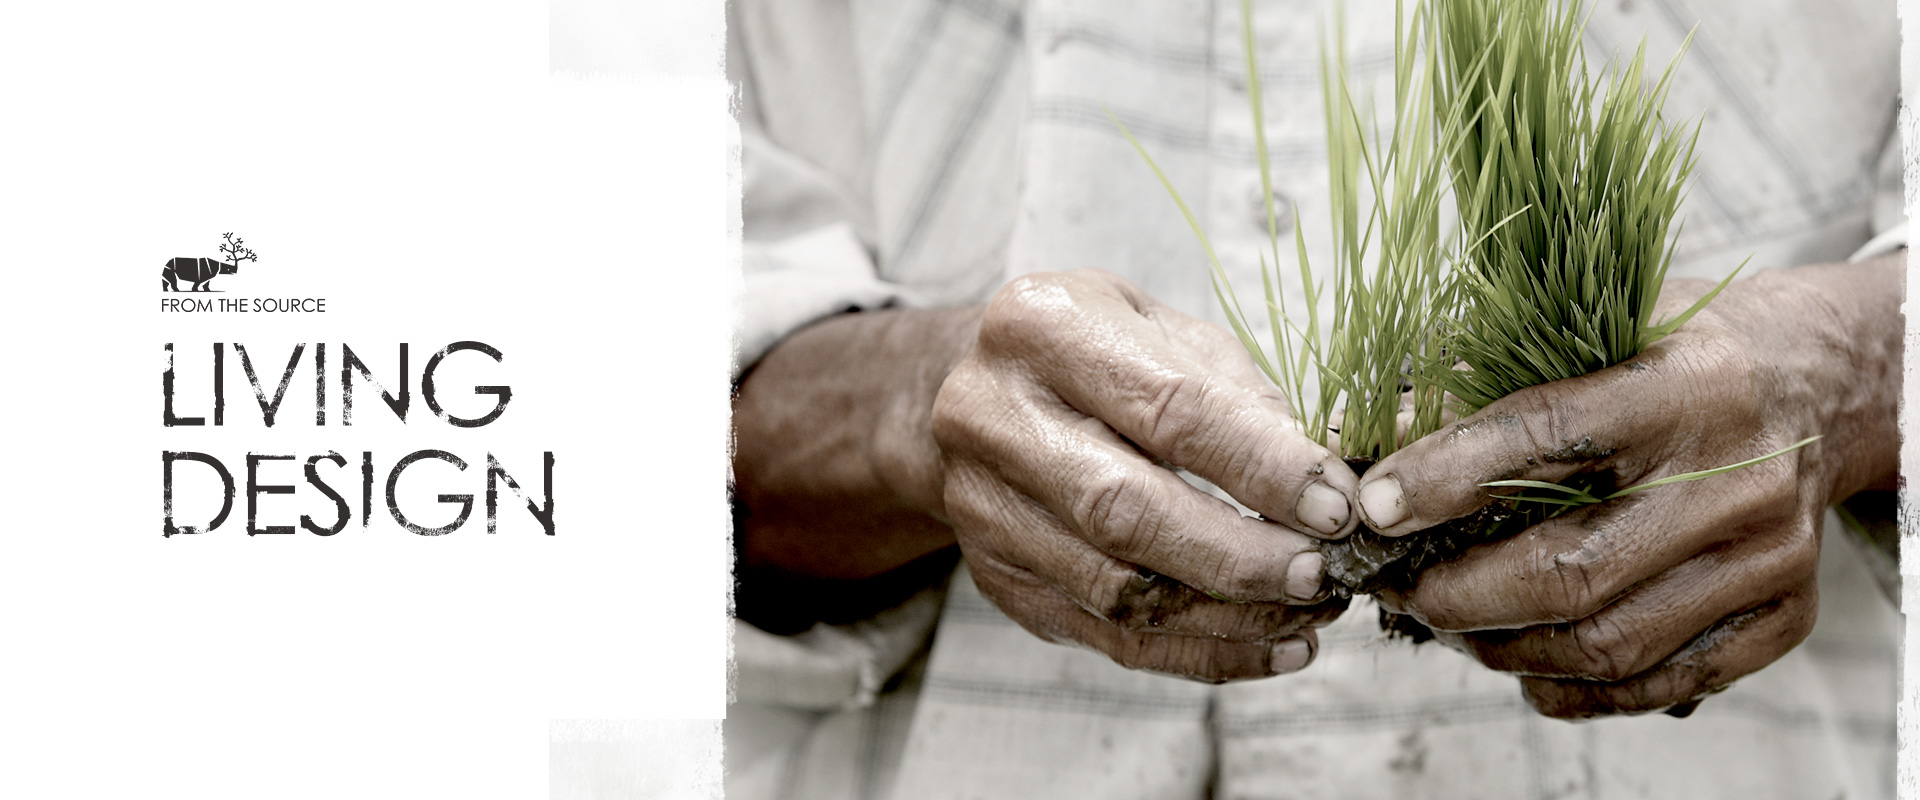 From The Source Promo Photo of hands holding grass